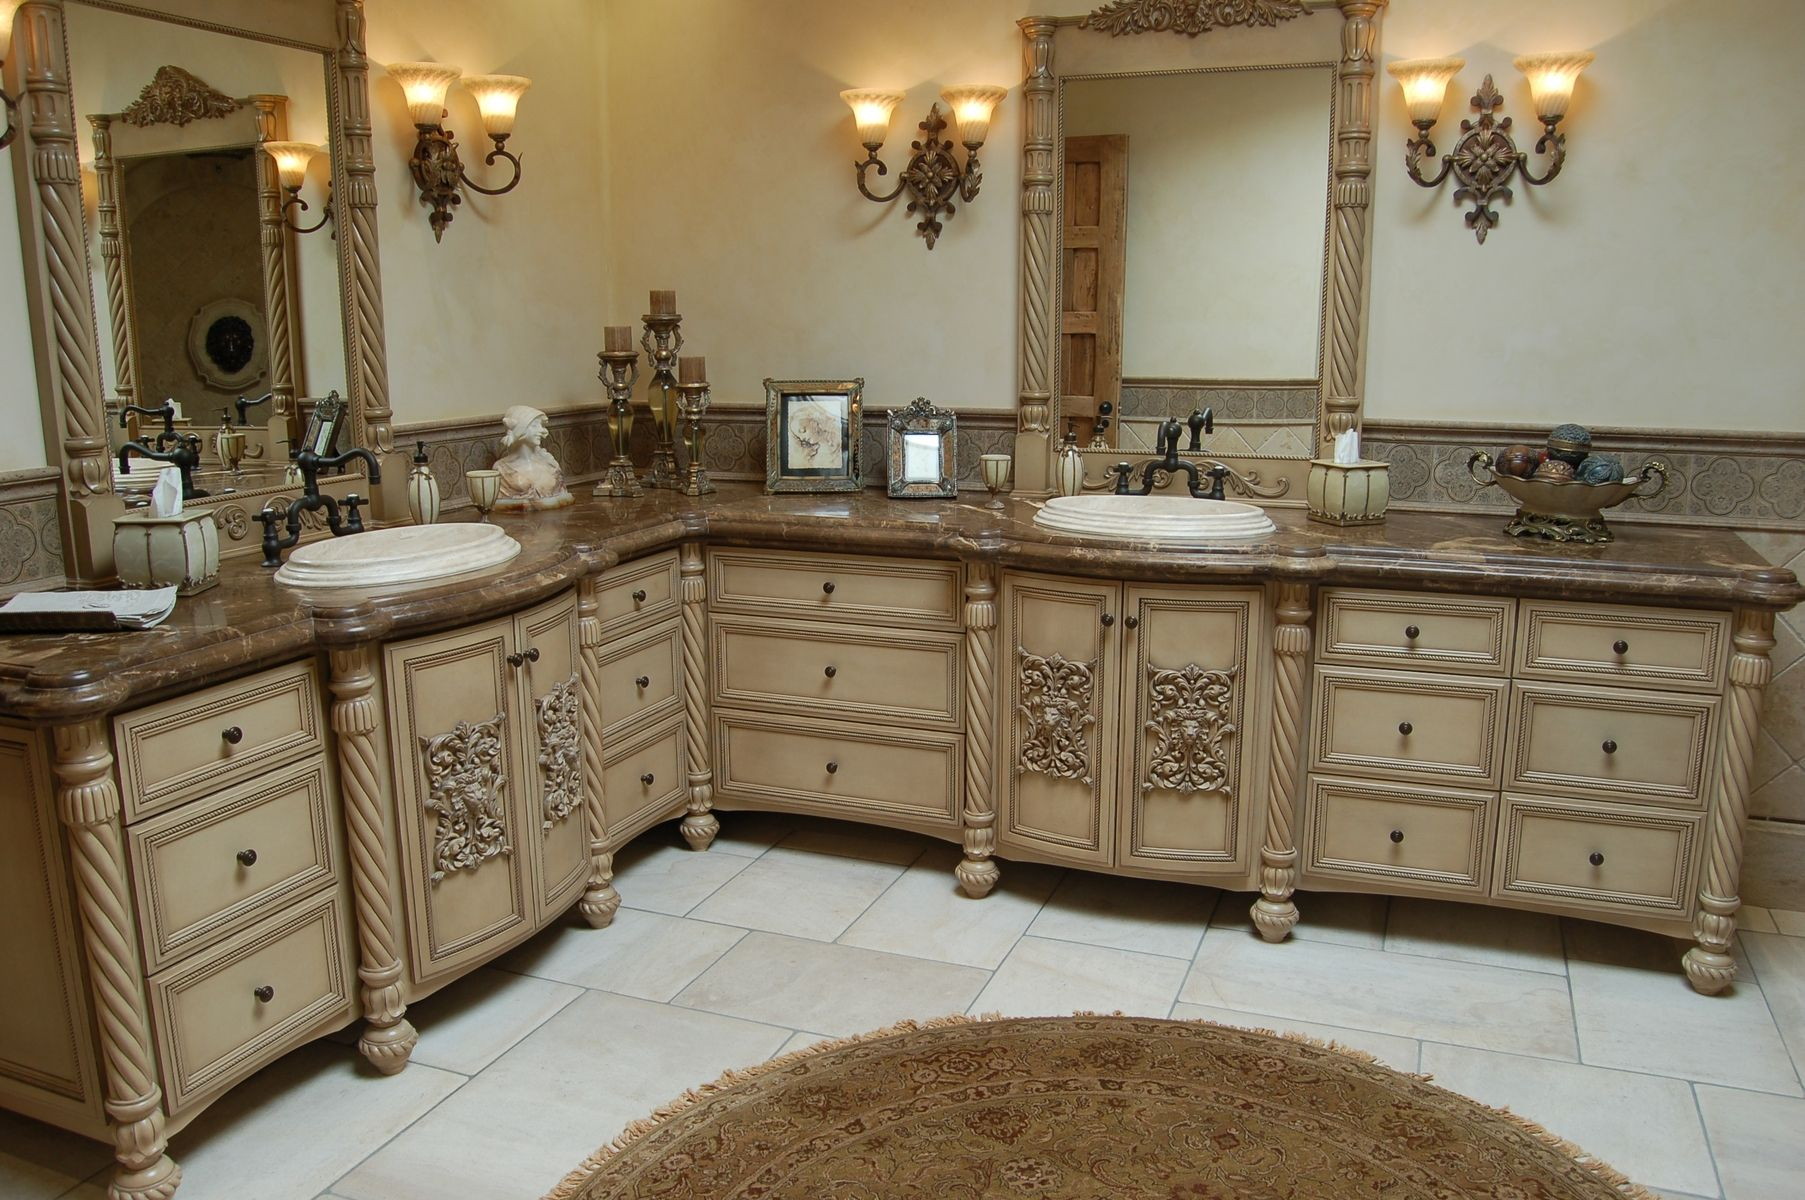 Handmade custom faux finish master bathroom cabinets by westend custom cabinets - Custom made cabinet ...